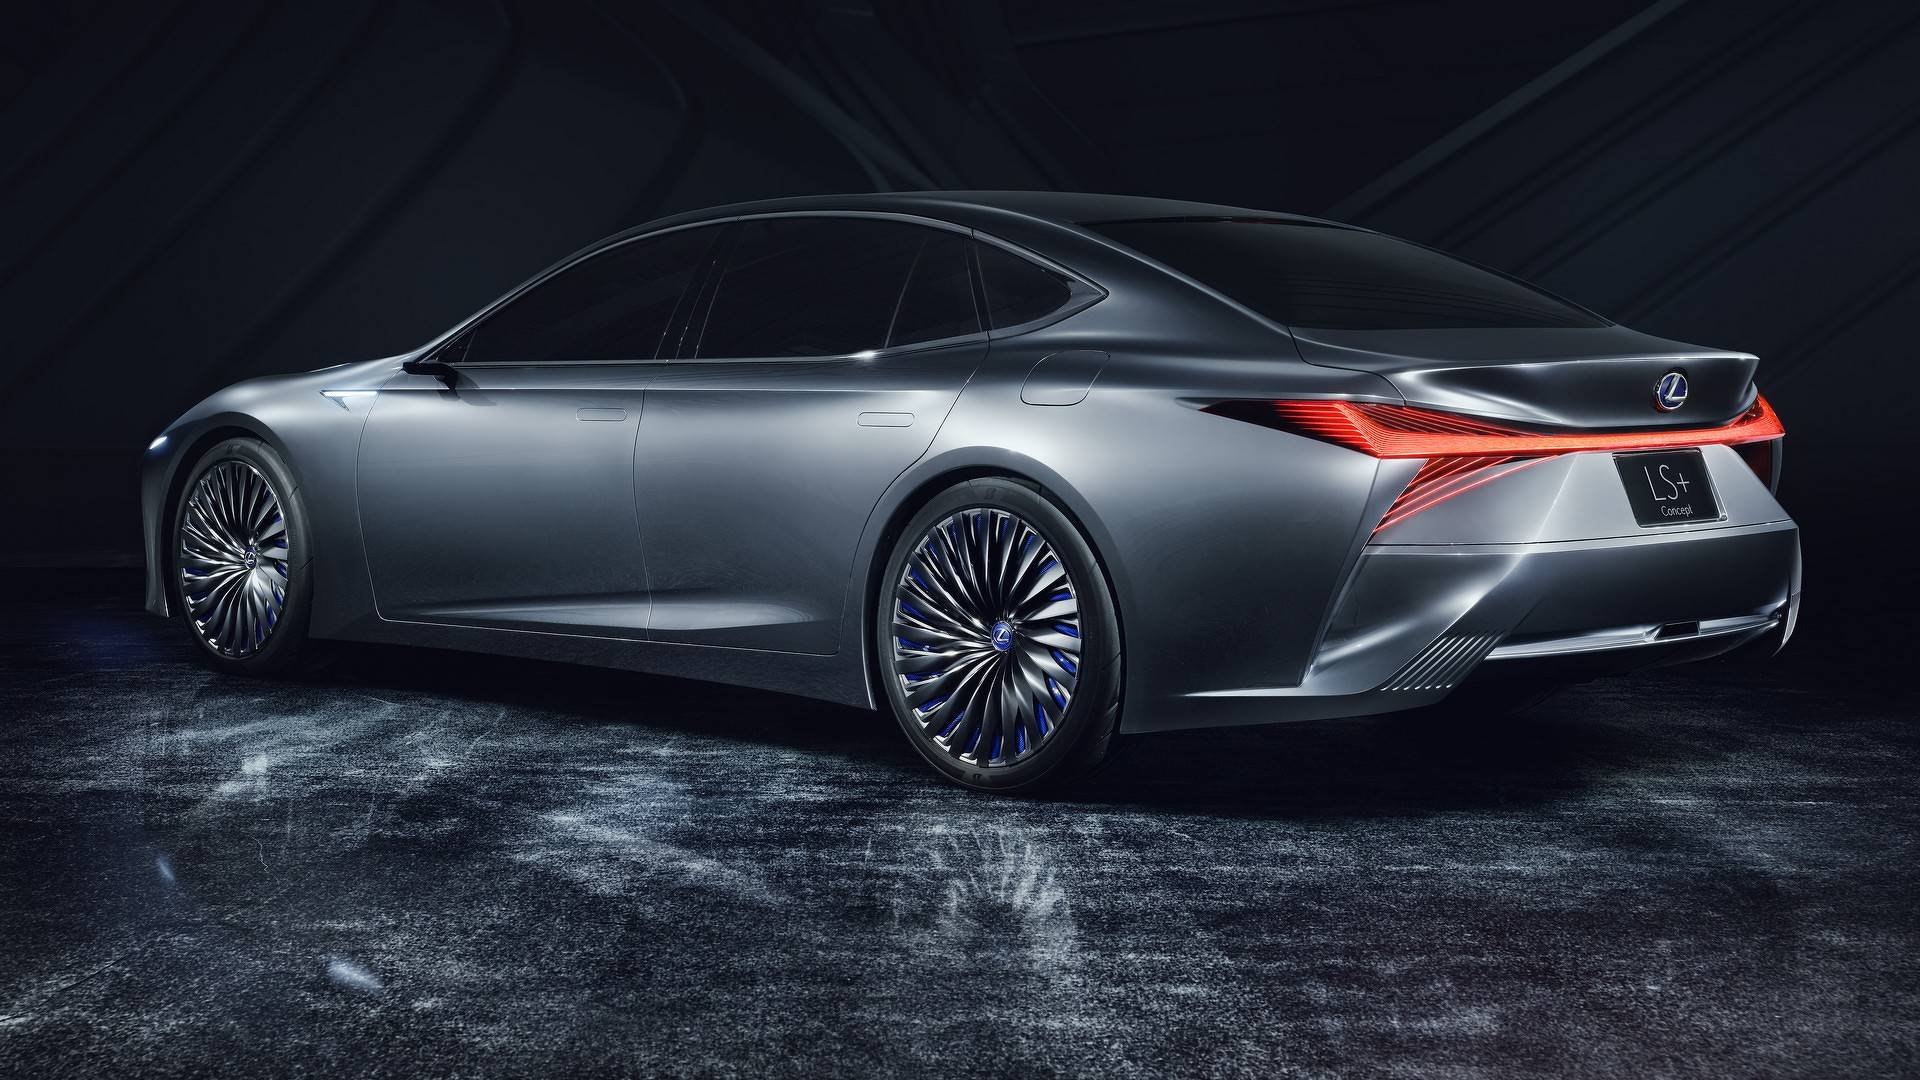 Lexus LS C Imagined as a BMW 8 Series Audi A9 petitor